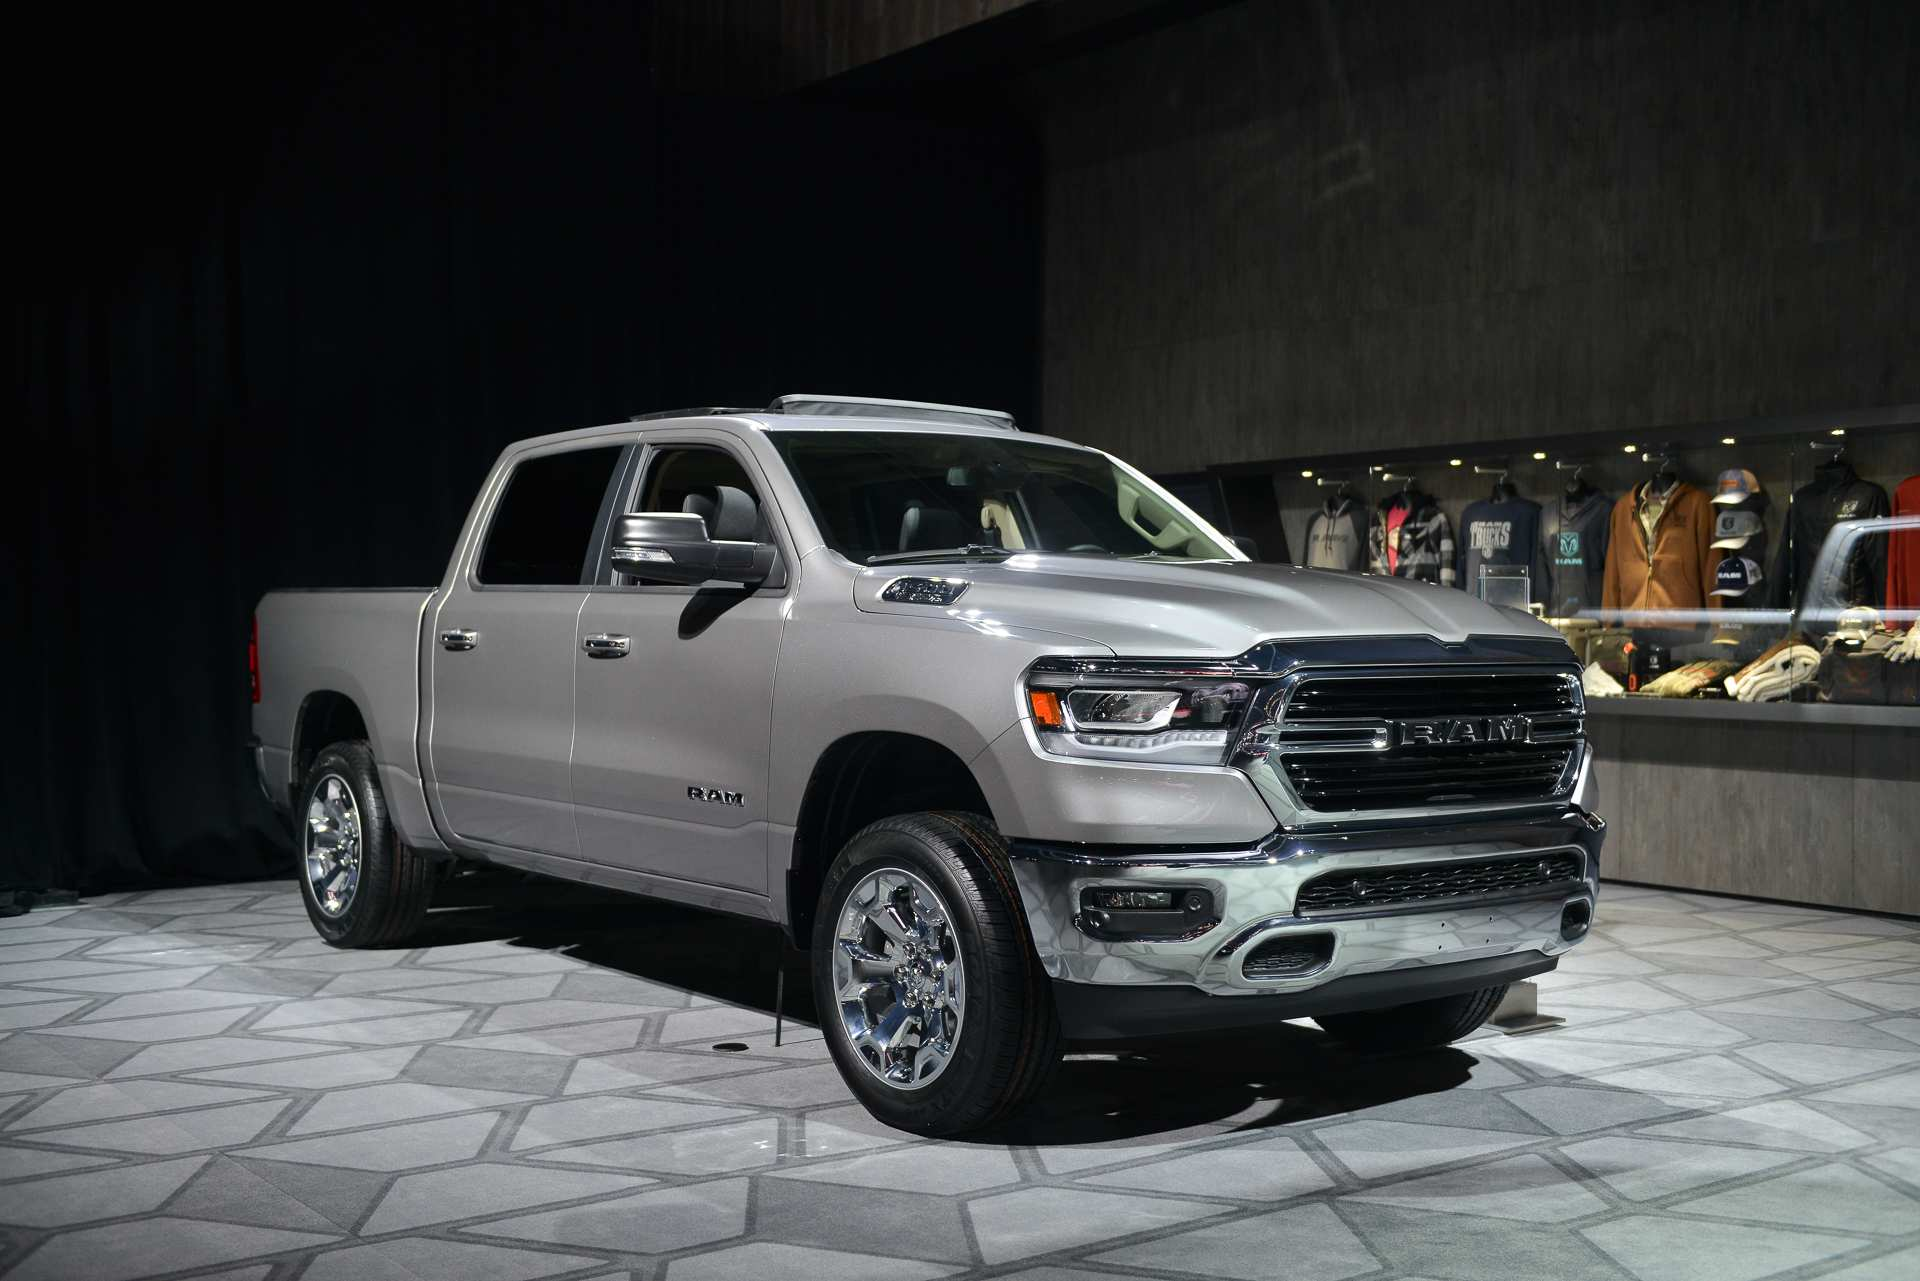 56 The Best 2019 Dodge Ram 2500 Pictures